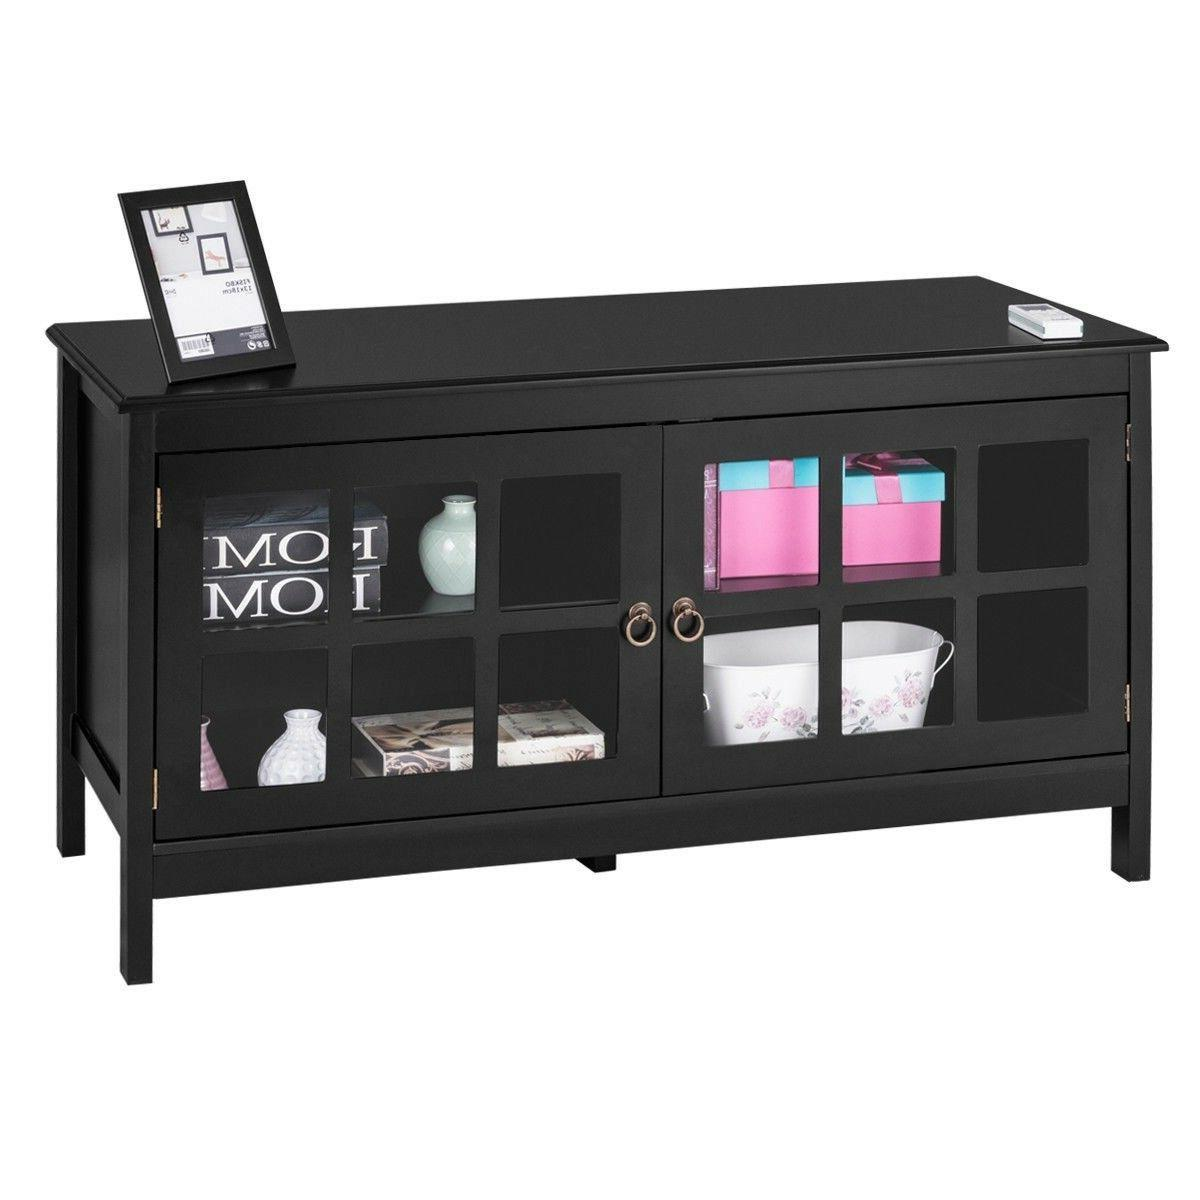 "Black 50"" Wood Storage Console Media Center Cabinet"